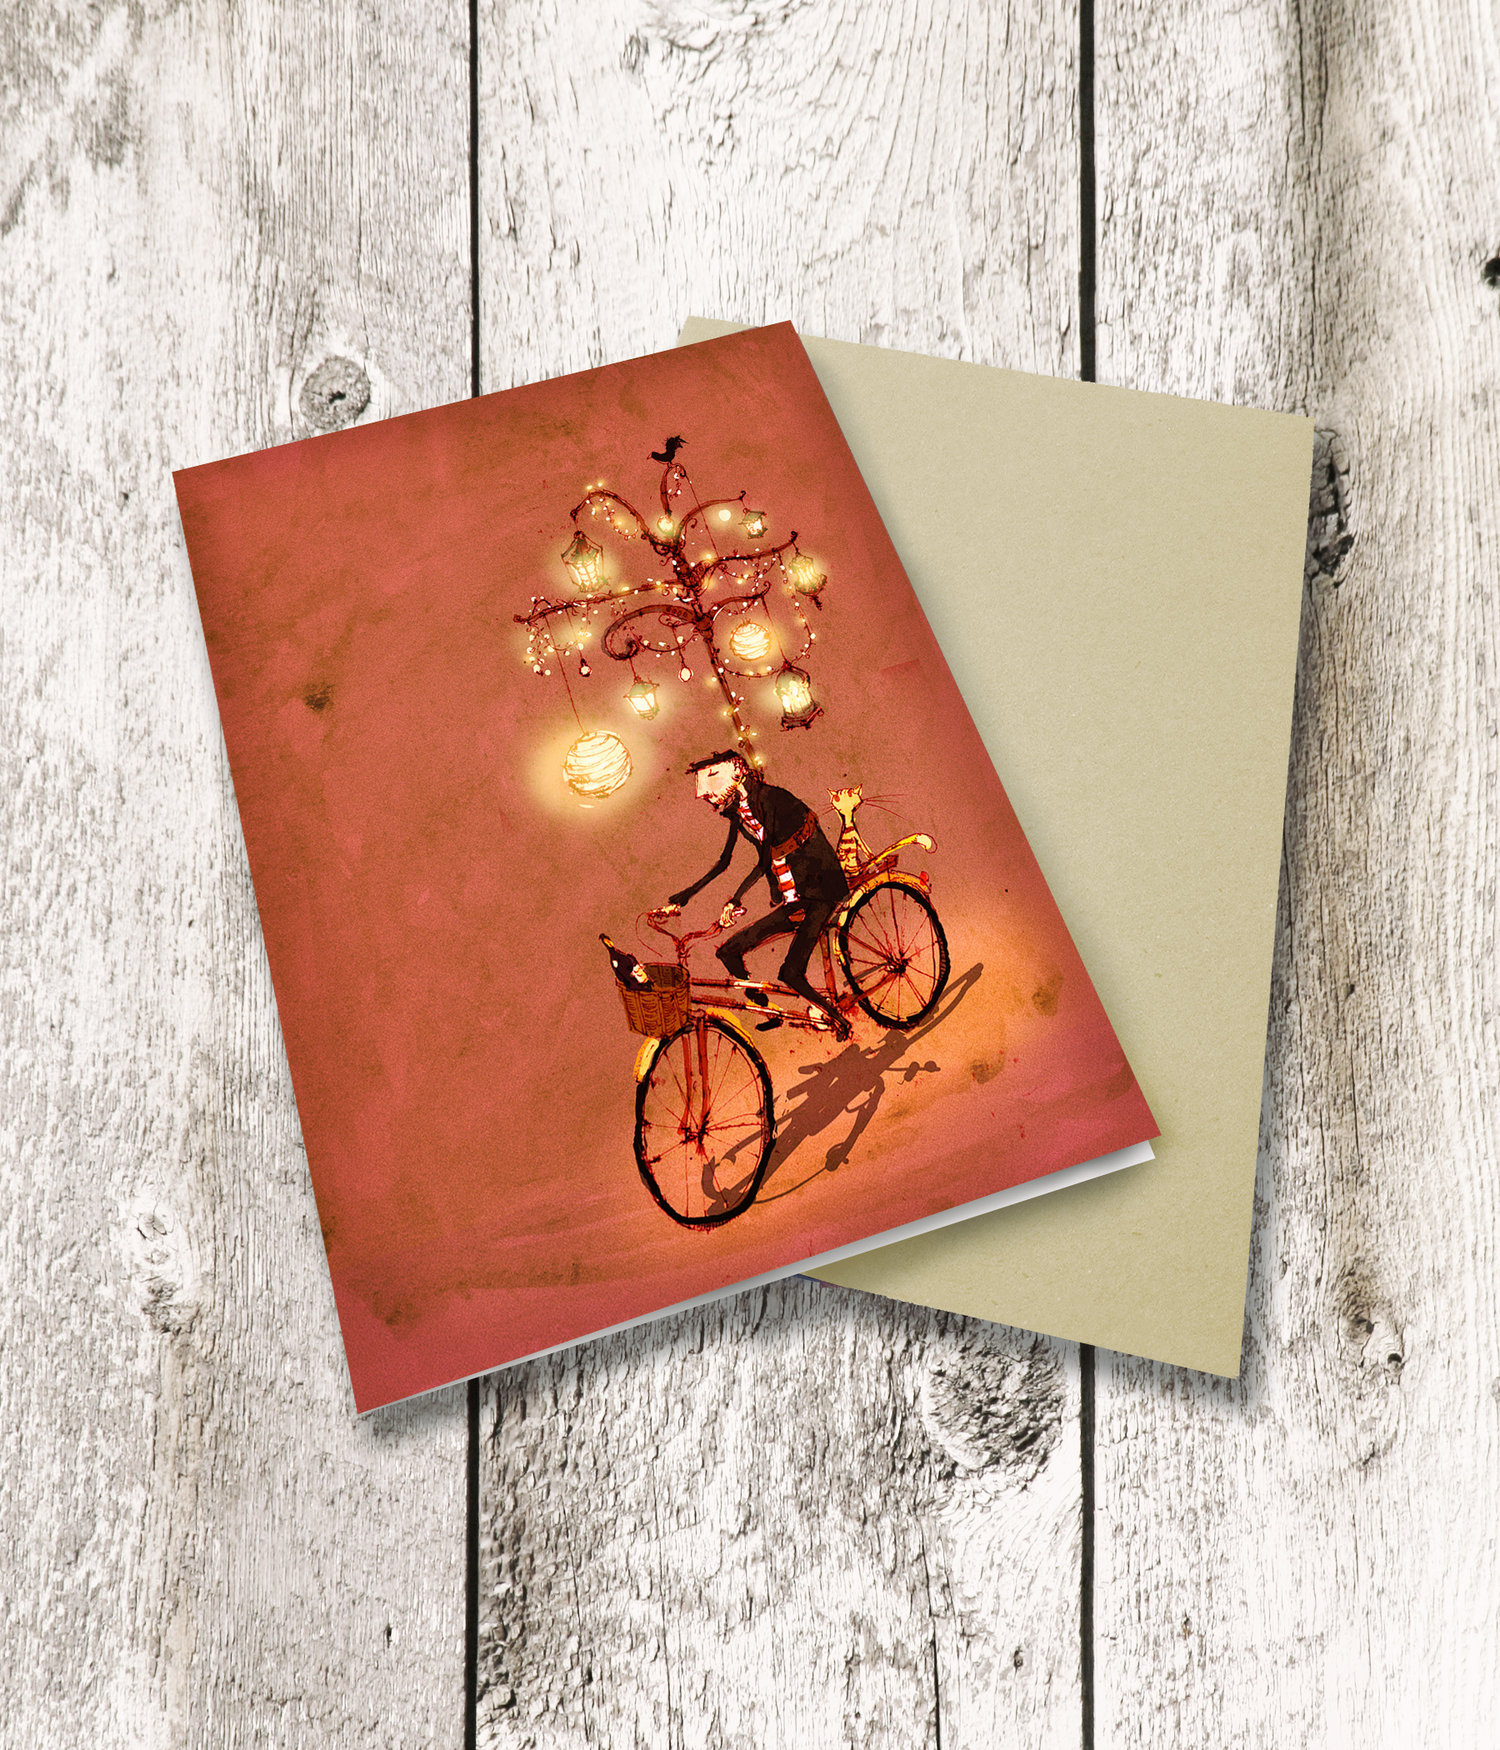 greeting cards set of 12 - Greeting Cards Images